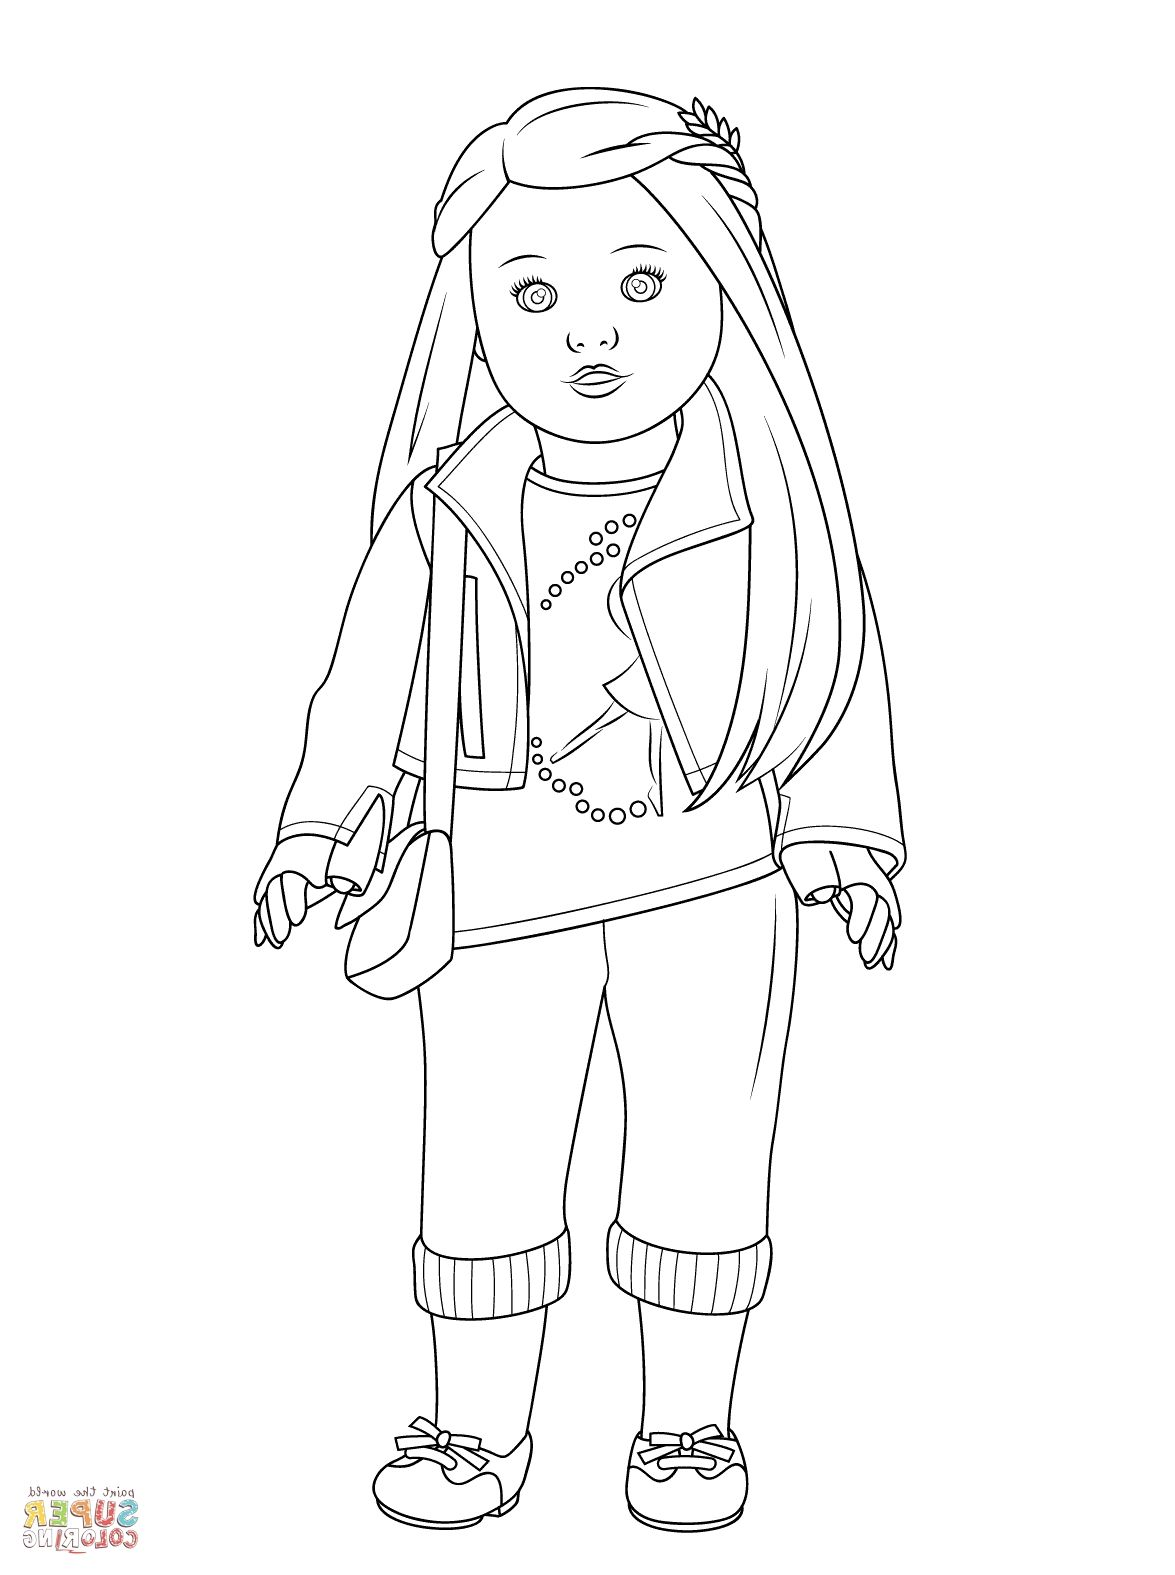 American Girl Coloring Pages American Girl Birthday Baby Coloring Pages Coloring Pages For Girls